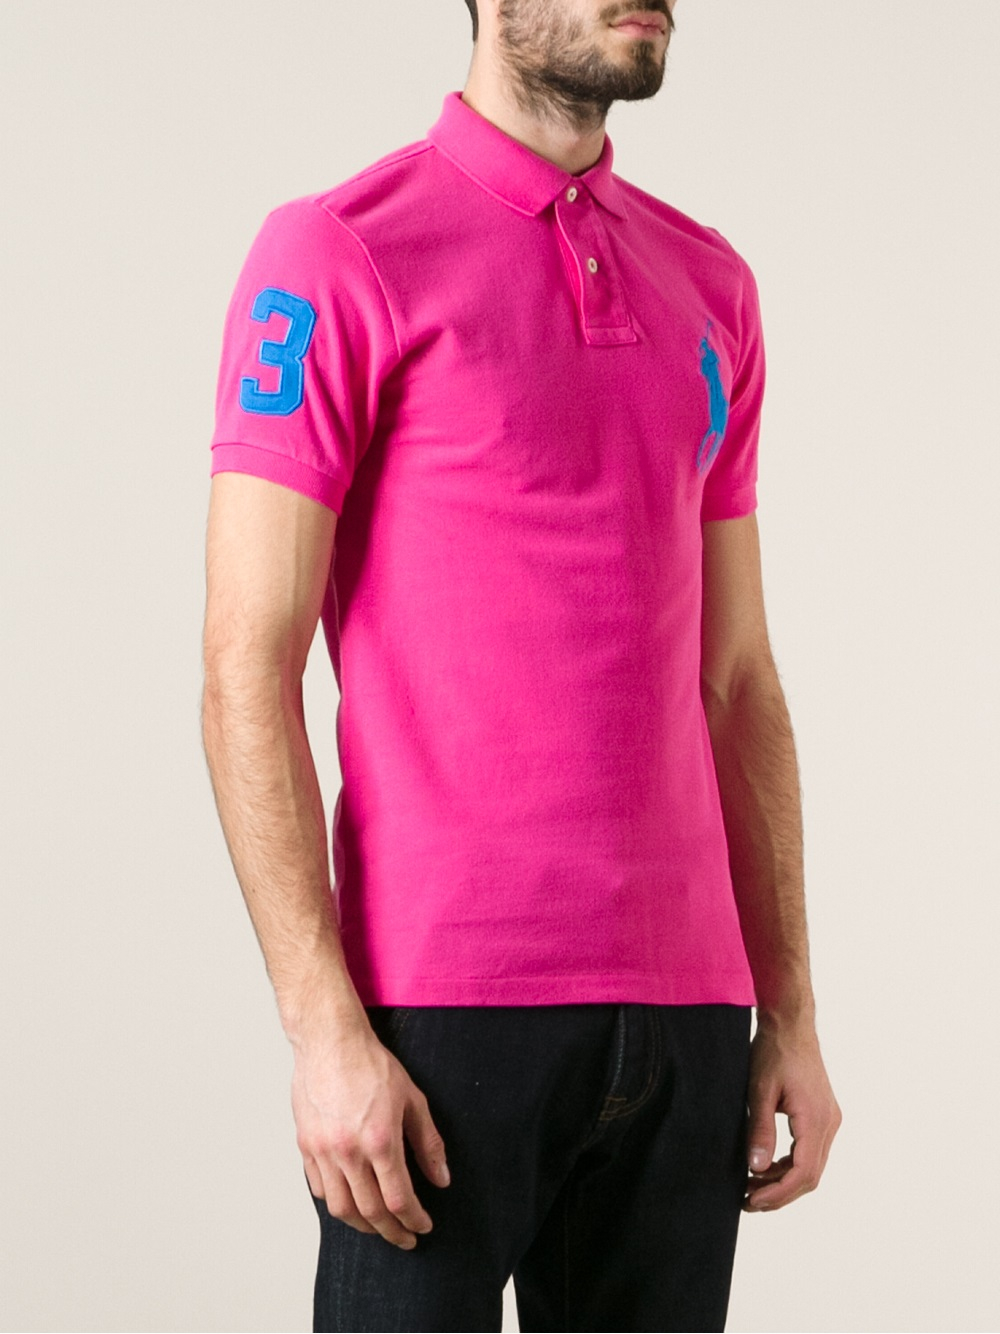 Lyst ralph lauren blue label classic polo shirt in pink for Pink and white ralph lauren shirt